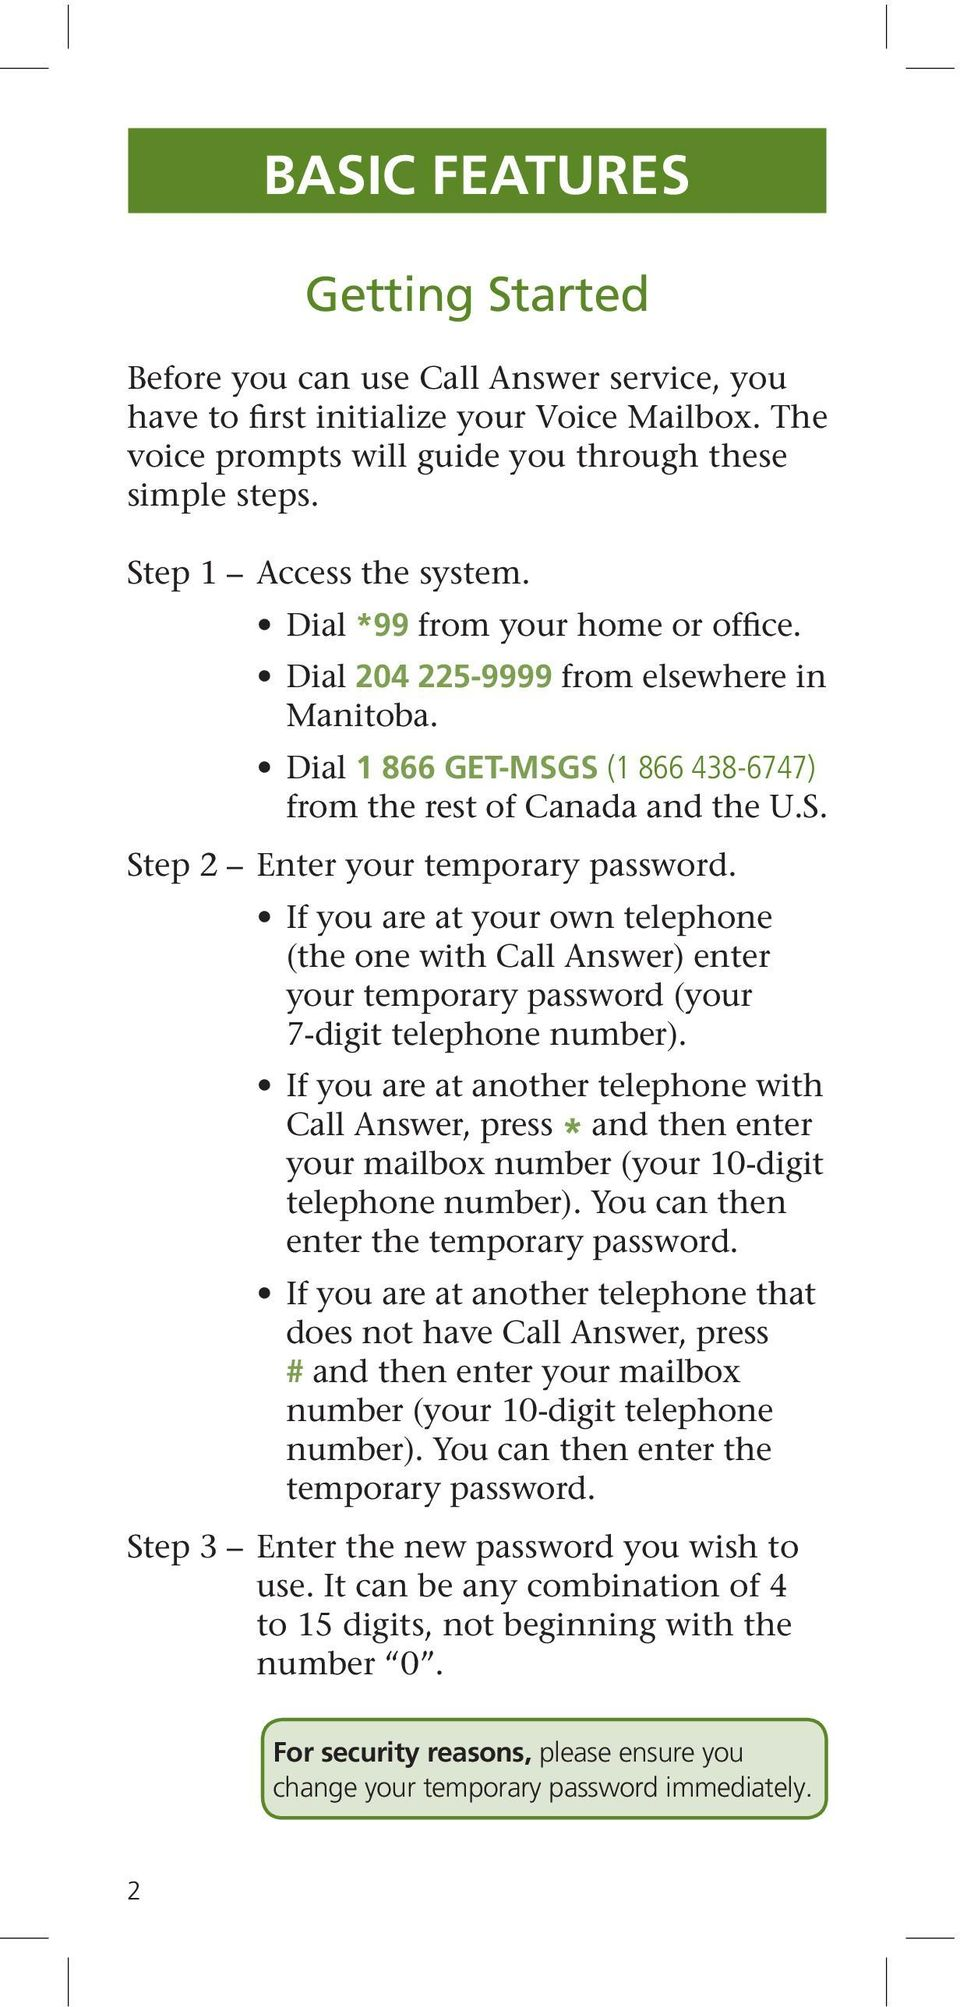 If you are at your own telephone (the one with Call Answer) enter your temporary password (your 7-digit telephone number).